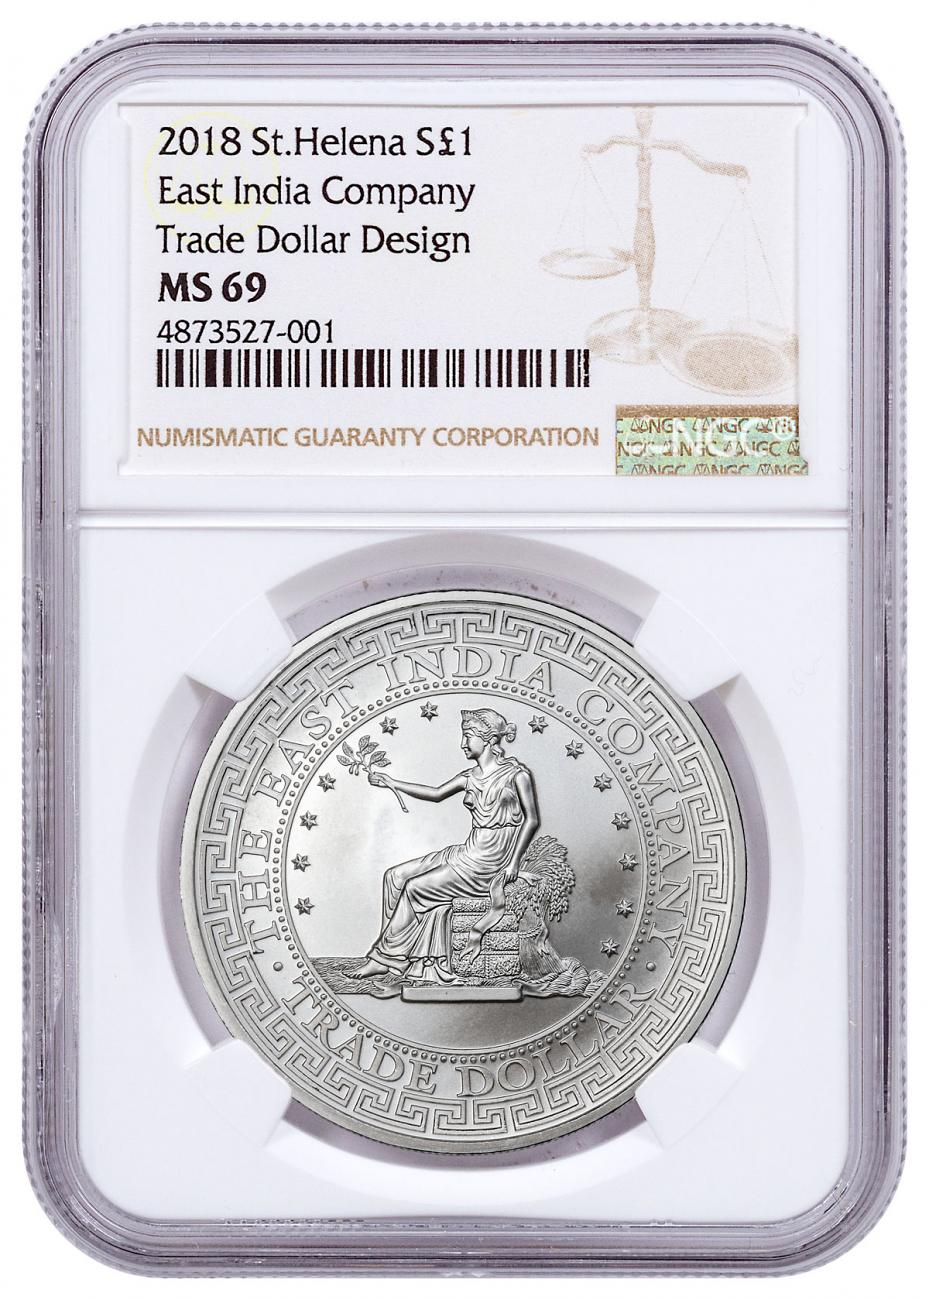 2018 St. Helena St. Helena Silver £1 East India Silver Trade Dollar NGC MS69